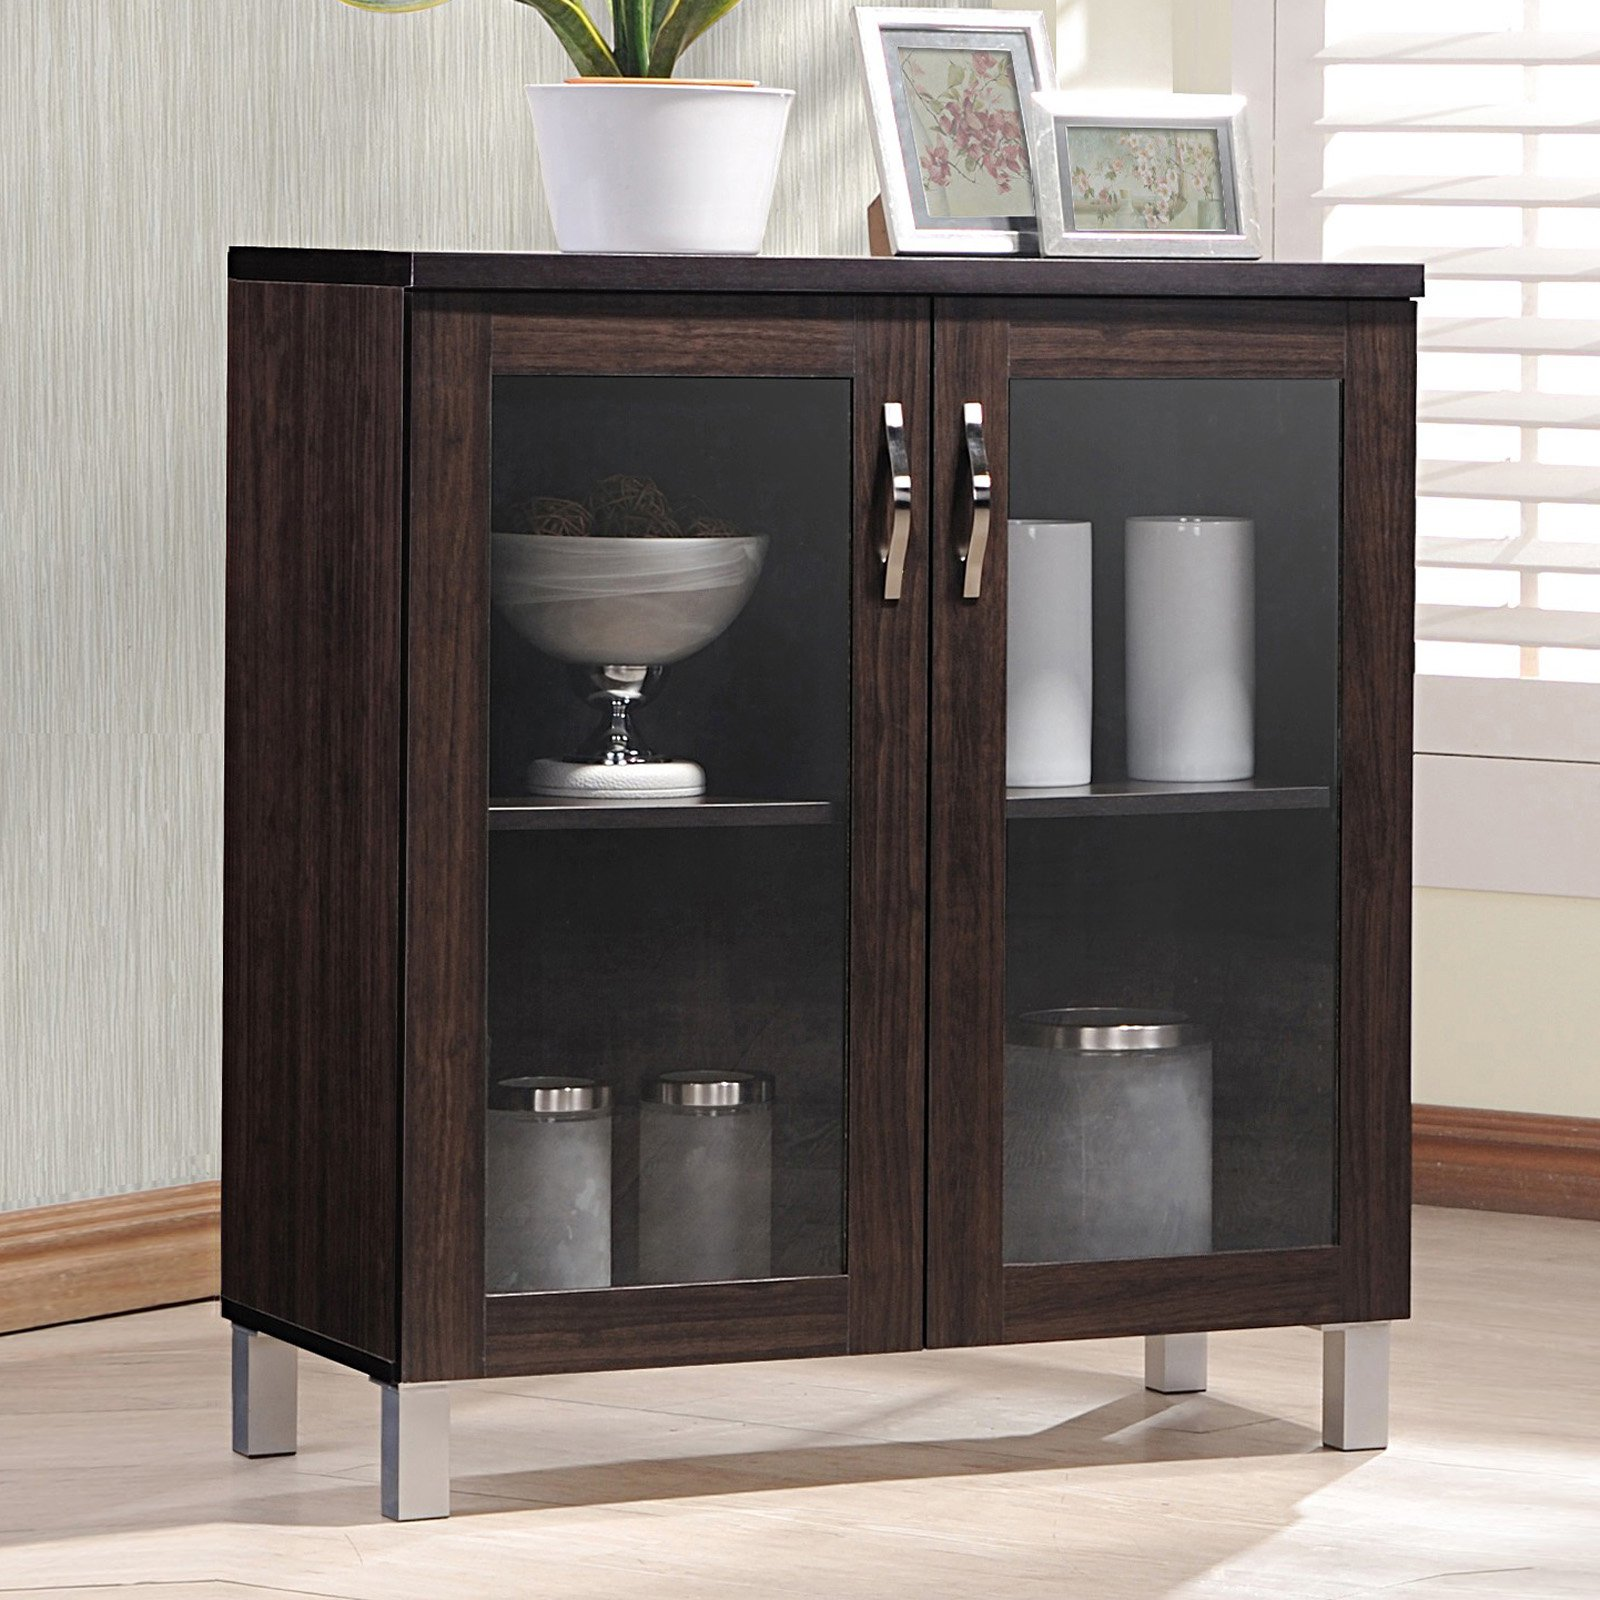 Baxton Studio Sintra Sideboard Storage Cabinet with Glass Doors by Wholesale Interiors